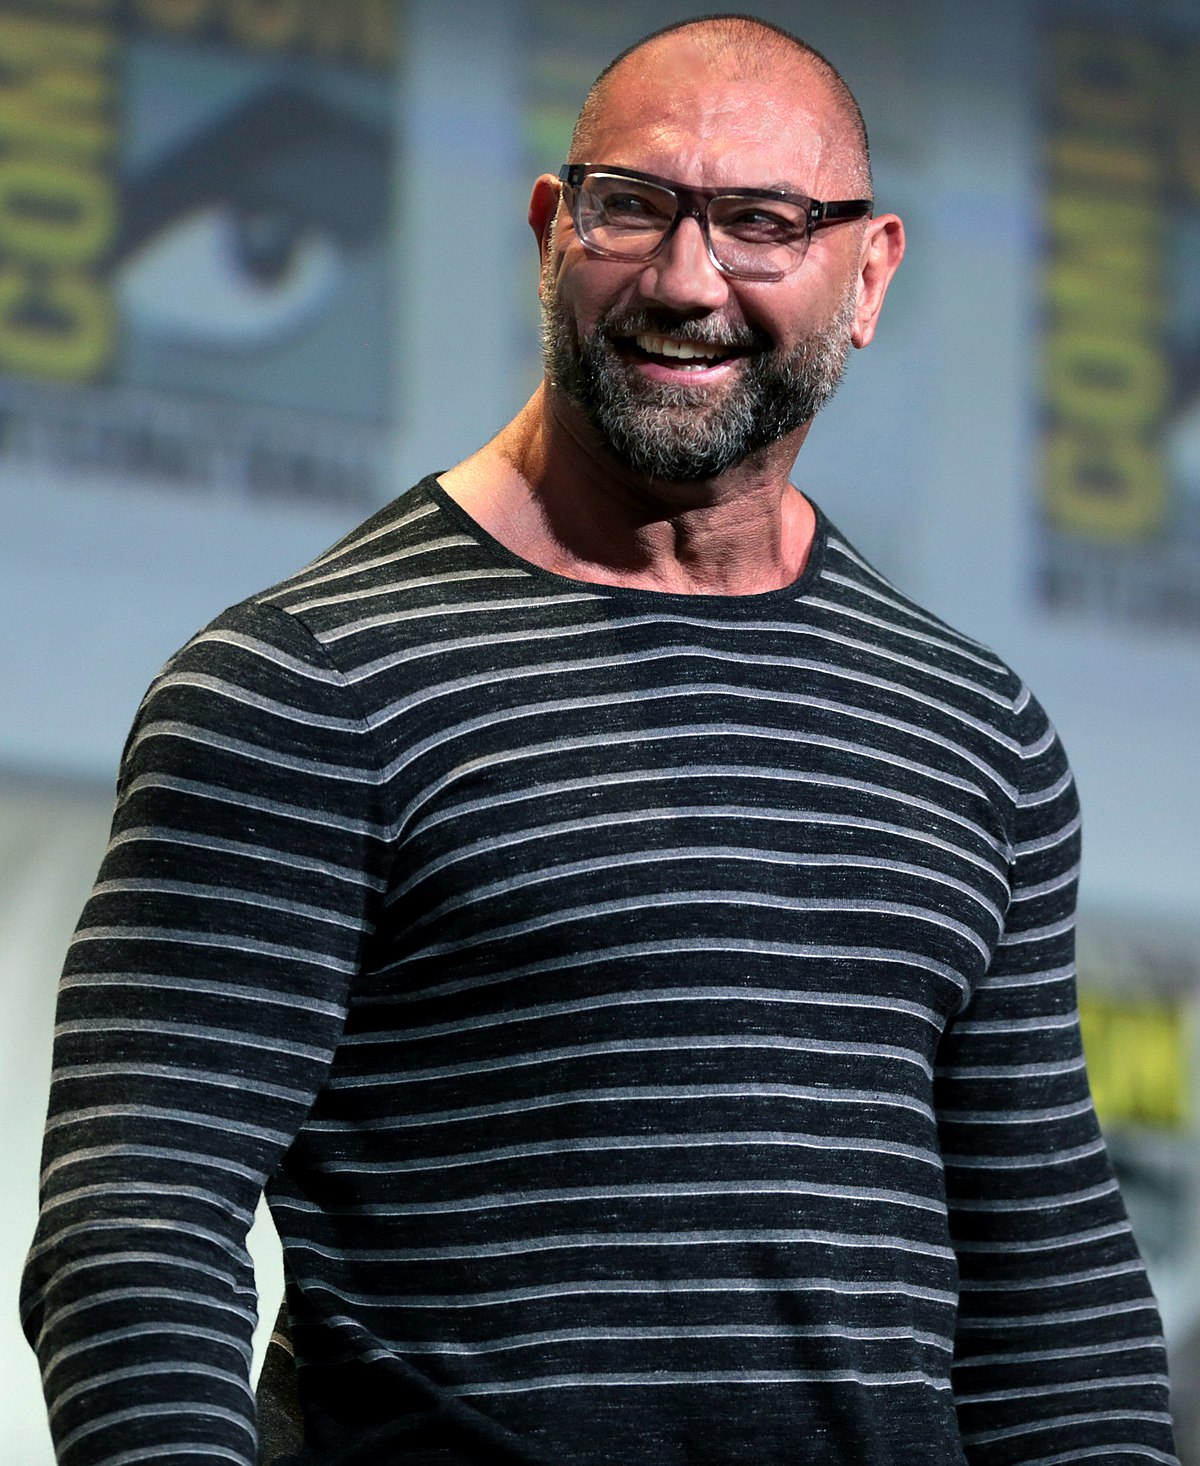 dave bautista filmleridave bautista instagram, dave bautista 2017, dave bautista wife, dave bautista filmleri, dave bautista wiki, dave bautista net worth, dave bautista spectre, dave bautista tattoo, dave batista height, dave bautista james bond, dave batista mma, dave bautista age, dave bautista films, dave batista tattoos, dave bautista workout, dave bautista wikipedia, dave bautista fight, dave bautista house, dave bautista and sarah jade, dave bautista filmography